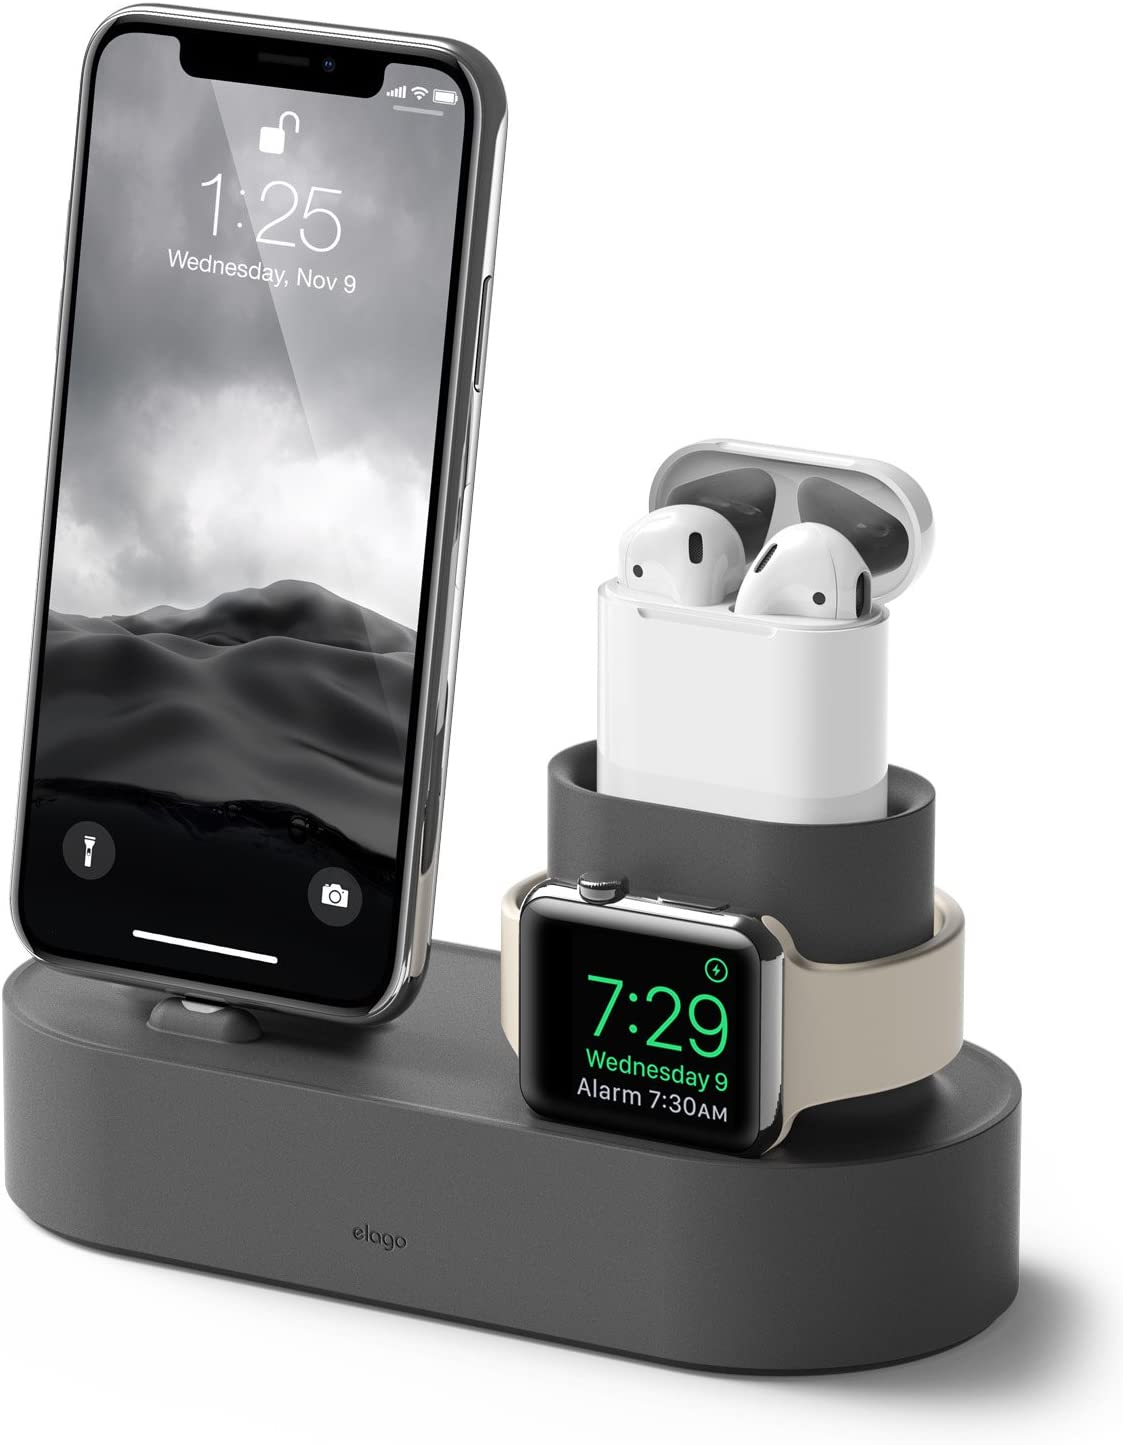 elago 3 in 1 Apple Charging Station Compatible with Apple Watch Series 6/SE/5/4/3/2/1, Apple AirPods 2/1, iPhone 11 and All iPhone Models [Original Cables Required] (Dark Grey)